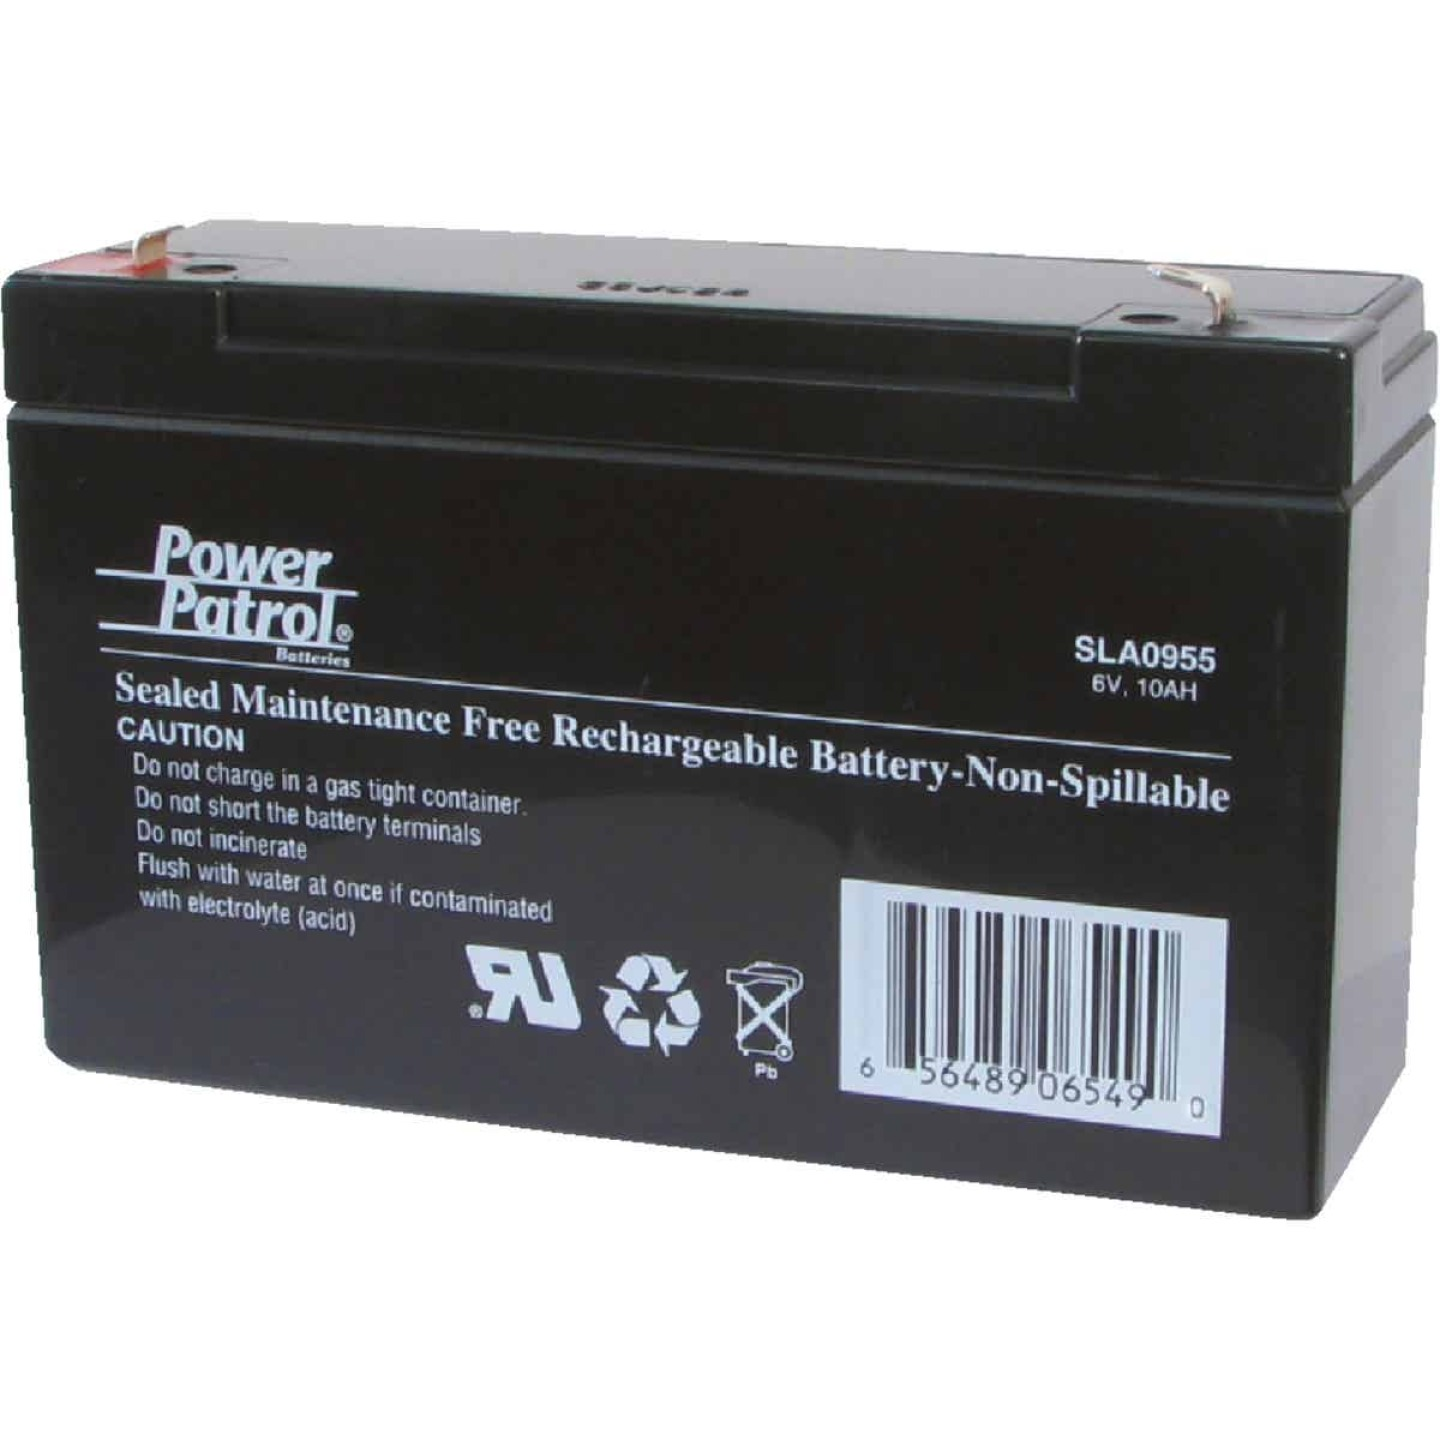 Interstate All Battery Power Patrol 6V 10A Security System Battery Image 1